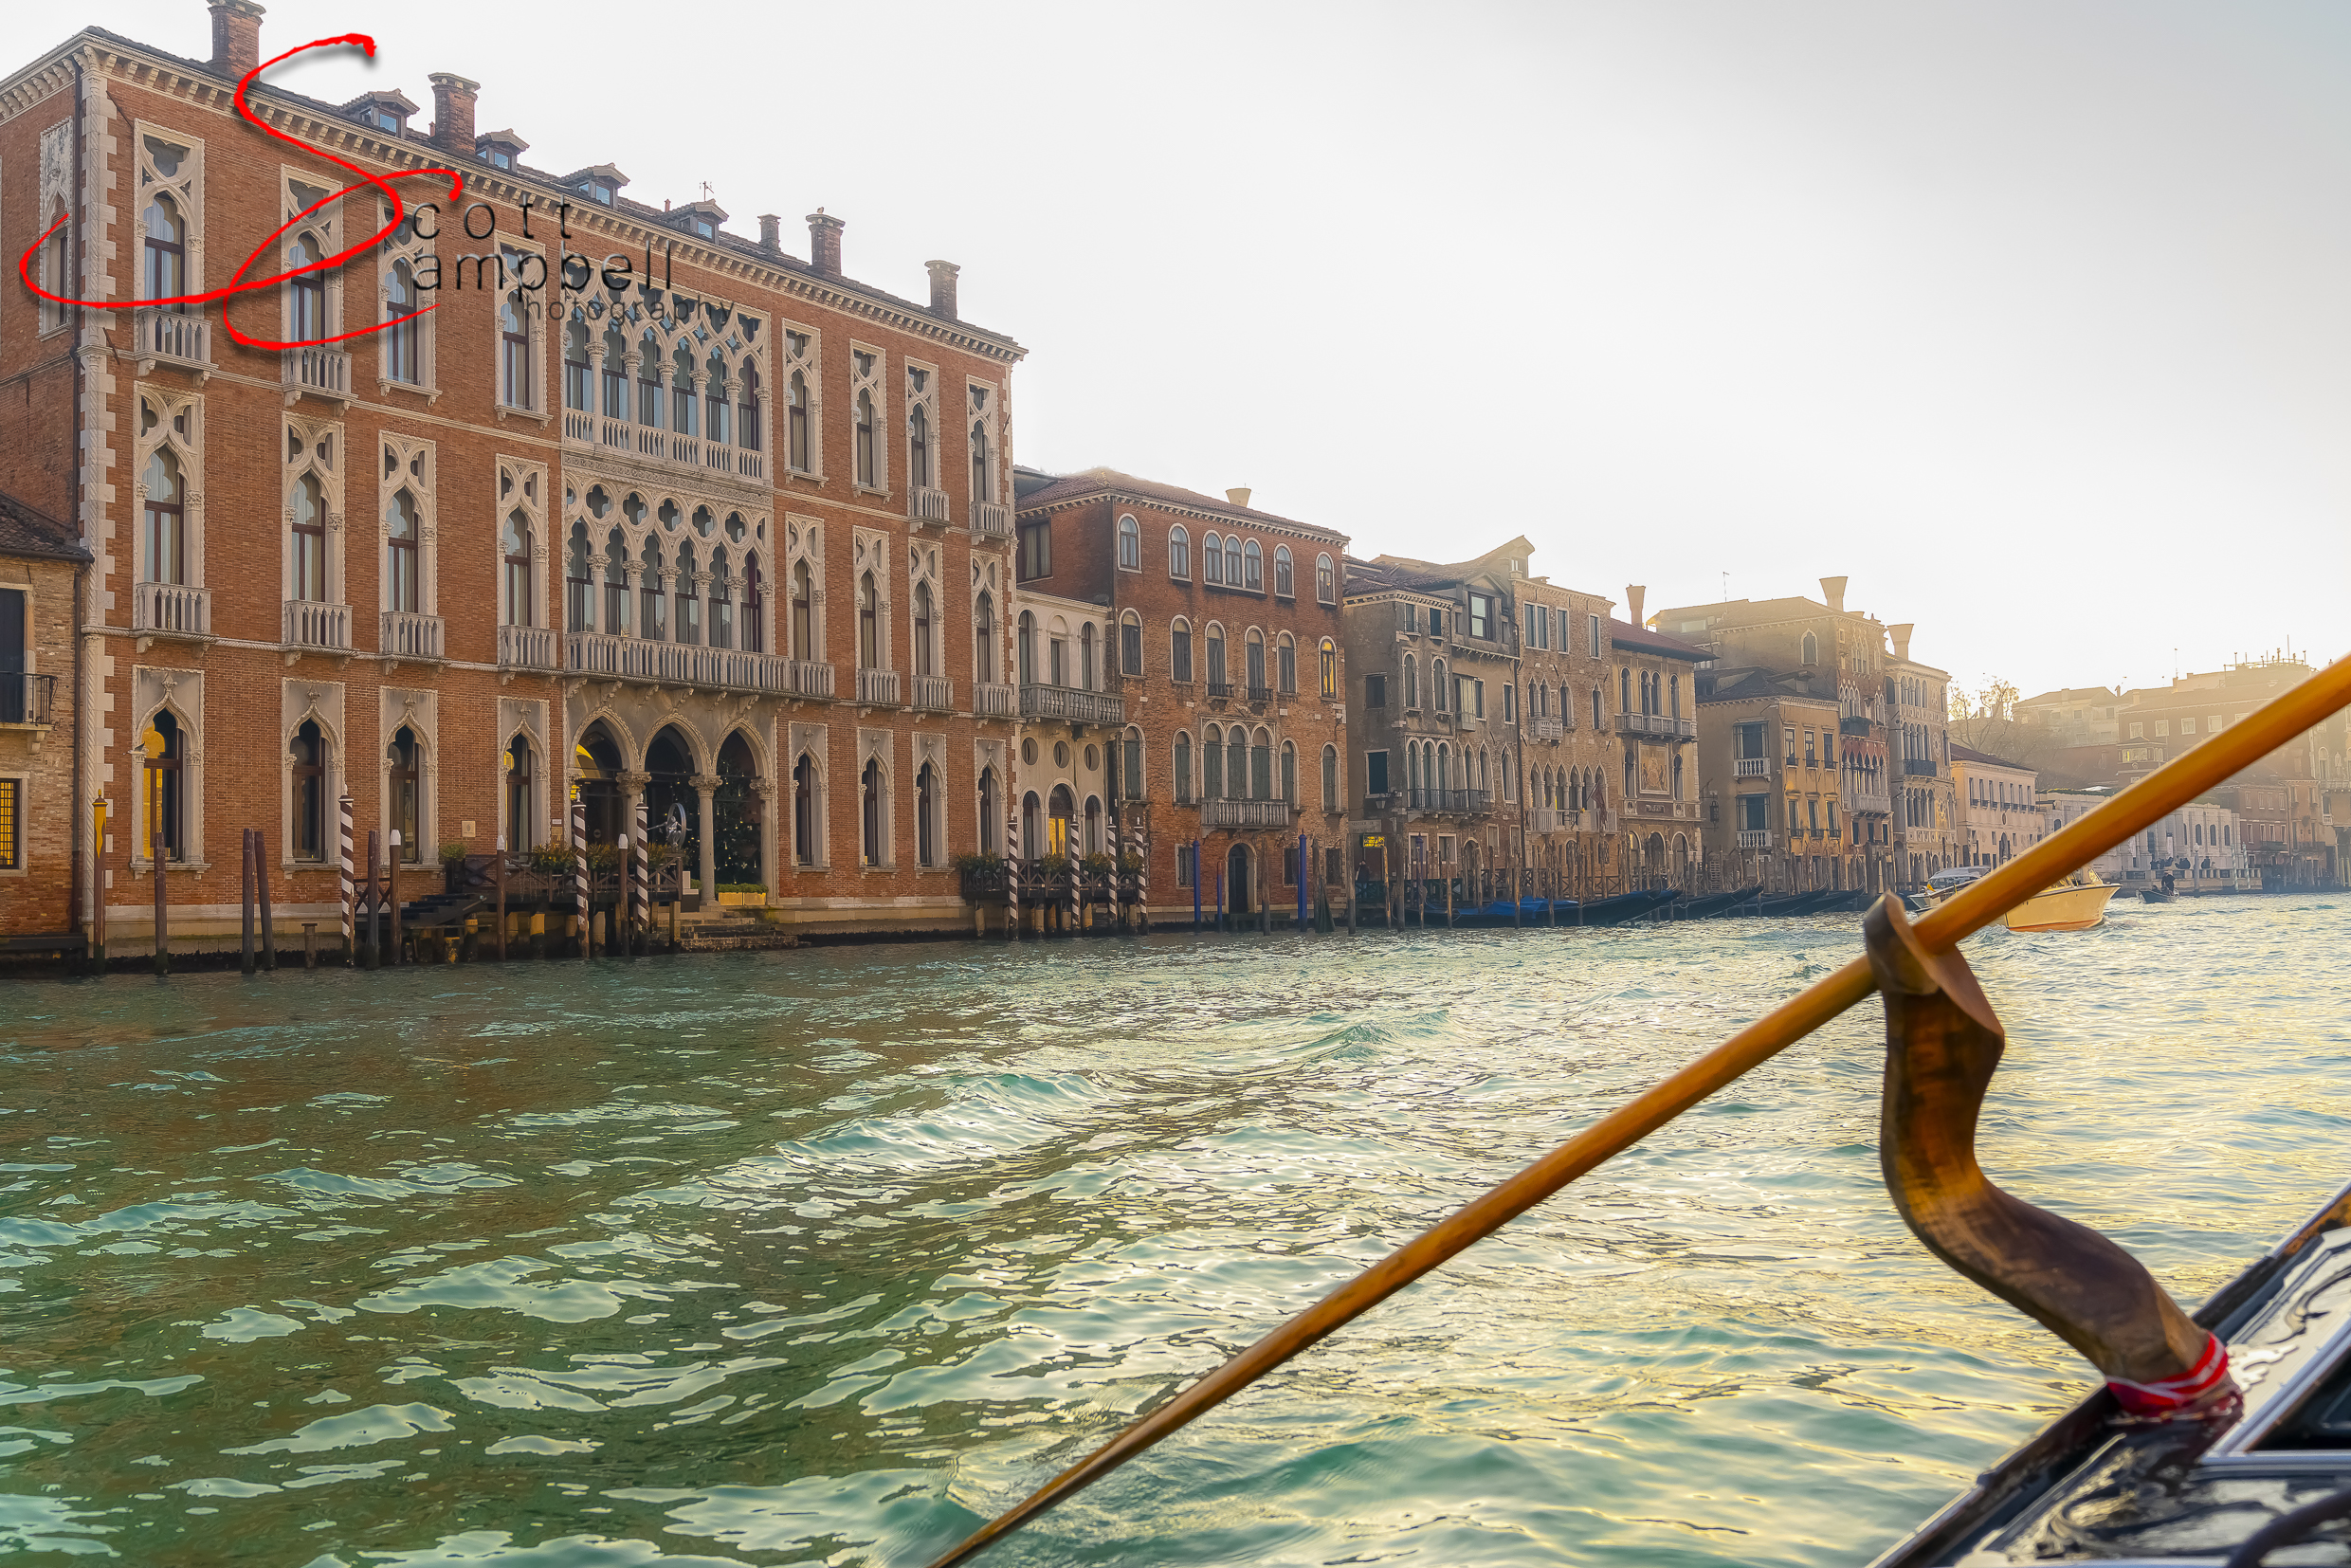 Amazing view down the Grand Canal.